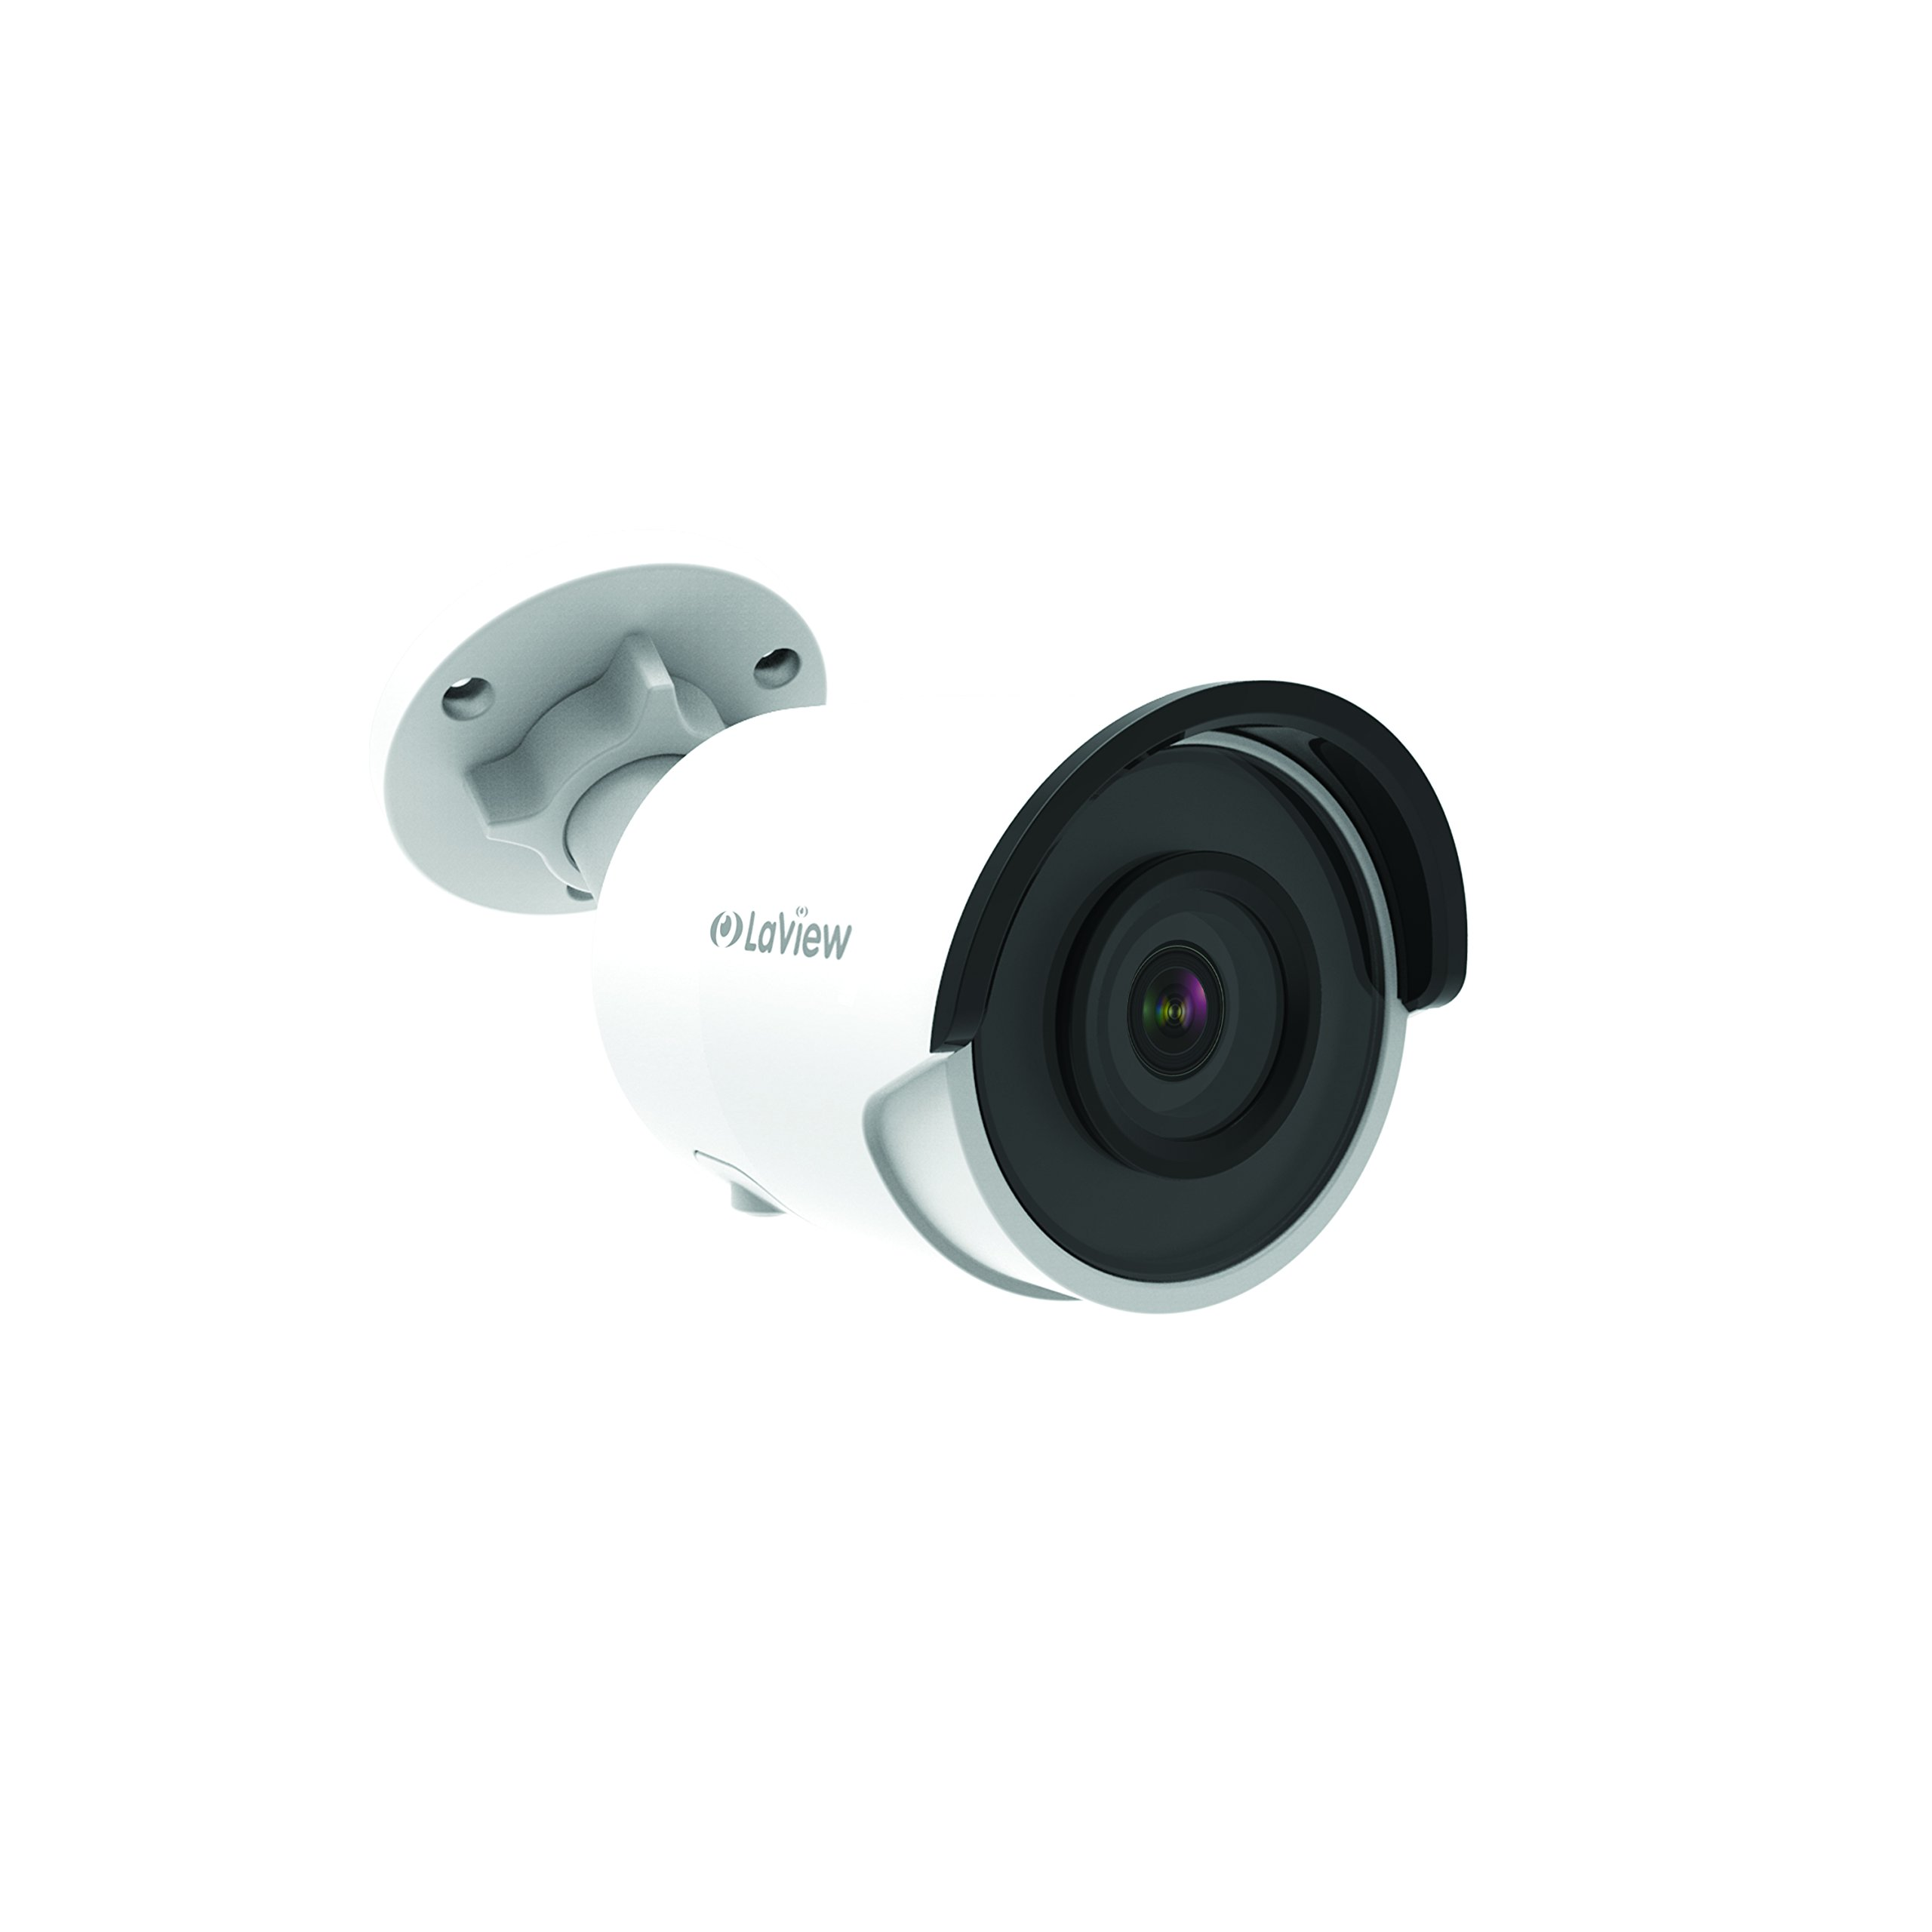 LaView 4K (8MP) Camera, IP PoE Ultra-HD H.265+ Smart Security Bullet Camera (3840x2160), without Built-in MicroSD card slot by LaView